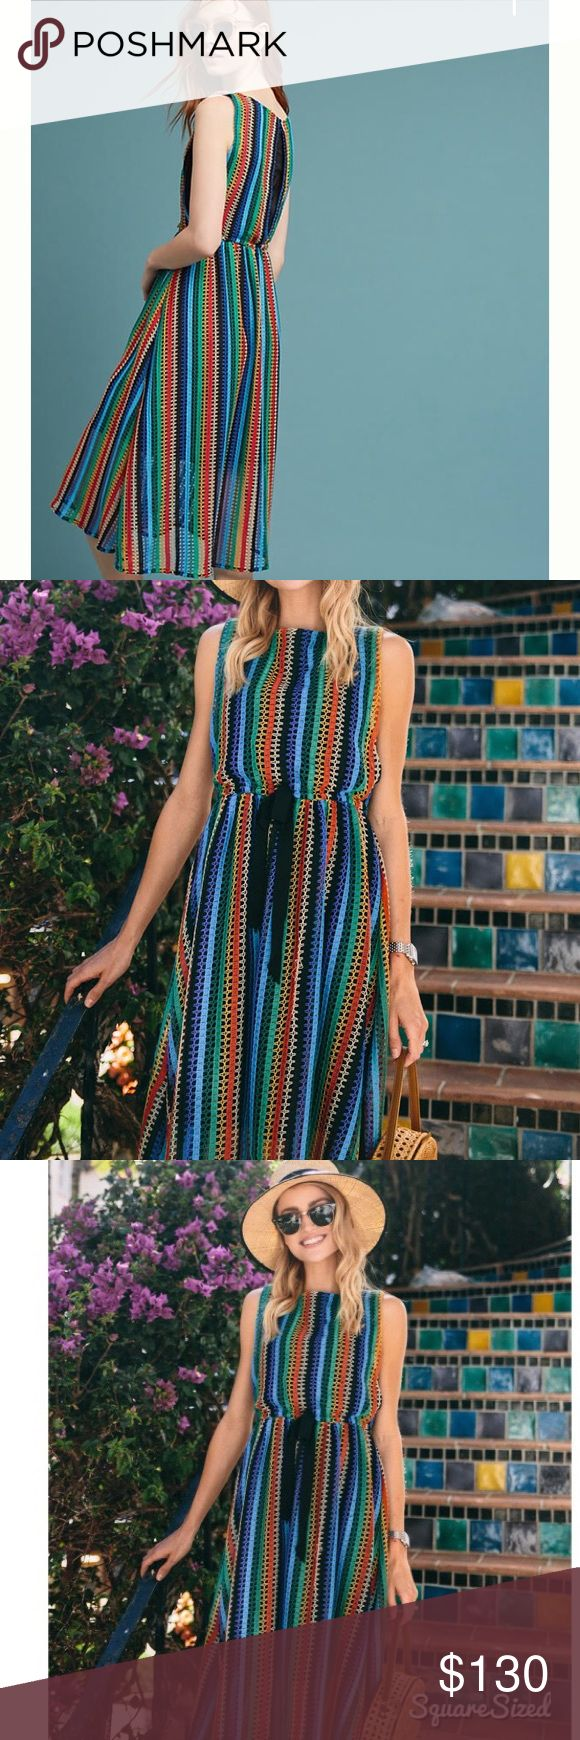 NEW Anthropologie Rainbow Crochet Midi Dress, 12 Still on Anthropologie website for $188. Brand new without tags. Flattering and perfect for summer midi dress. Tag marked to prevent in store returns. Anthropologie Dresses Midi